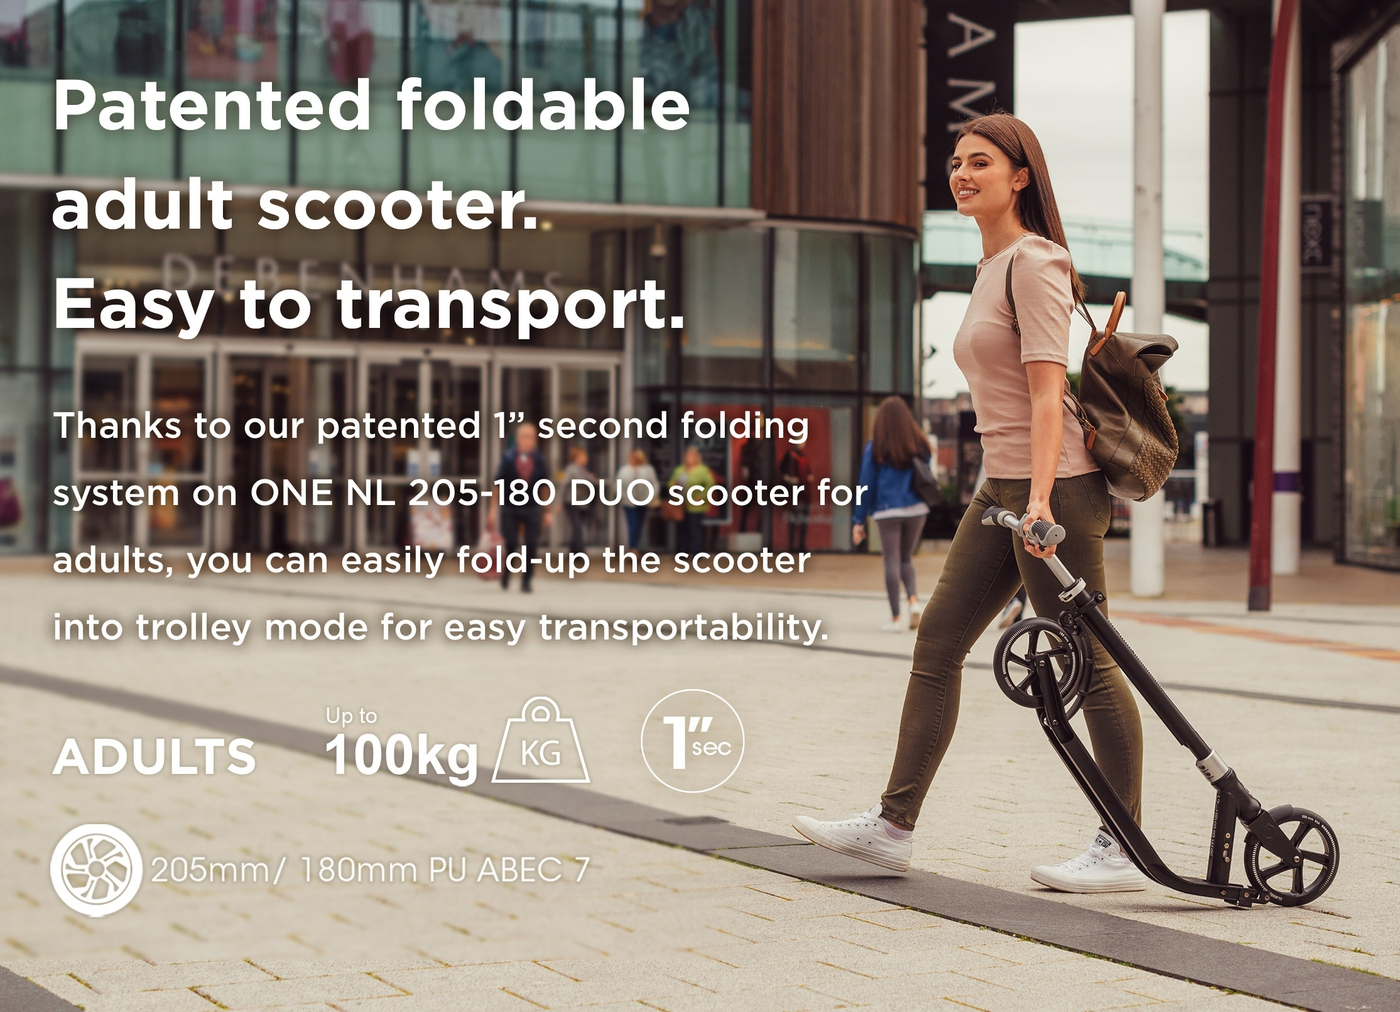 Patented foldable adult scooter. Easy to transport.